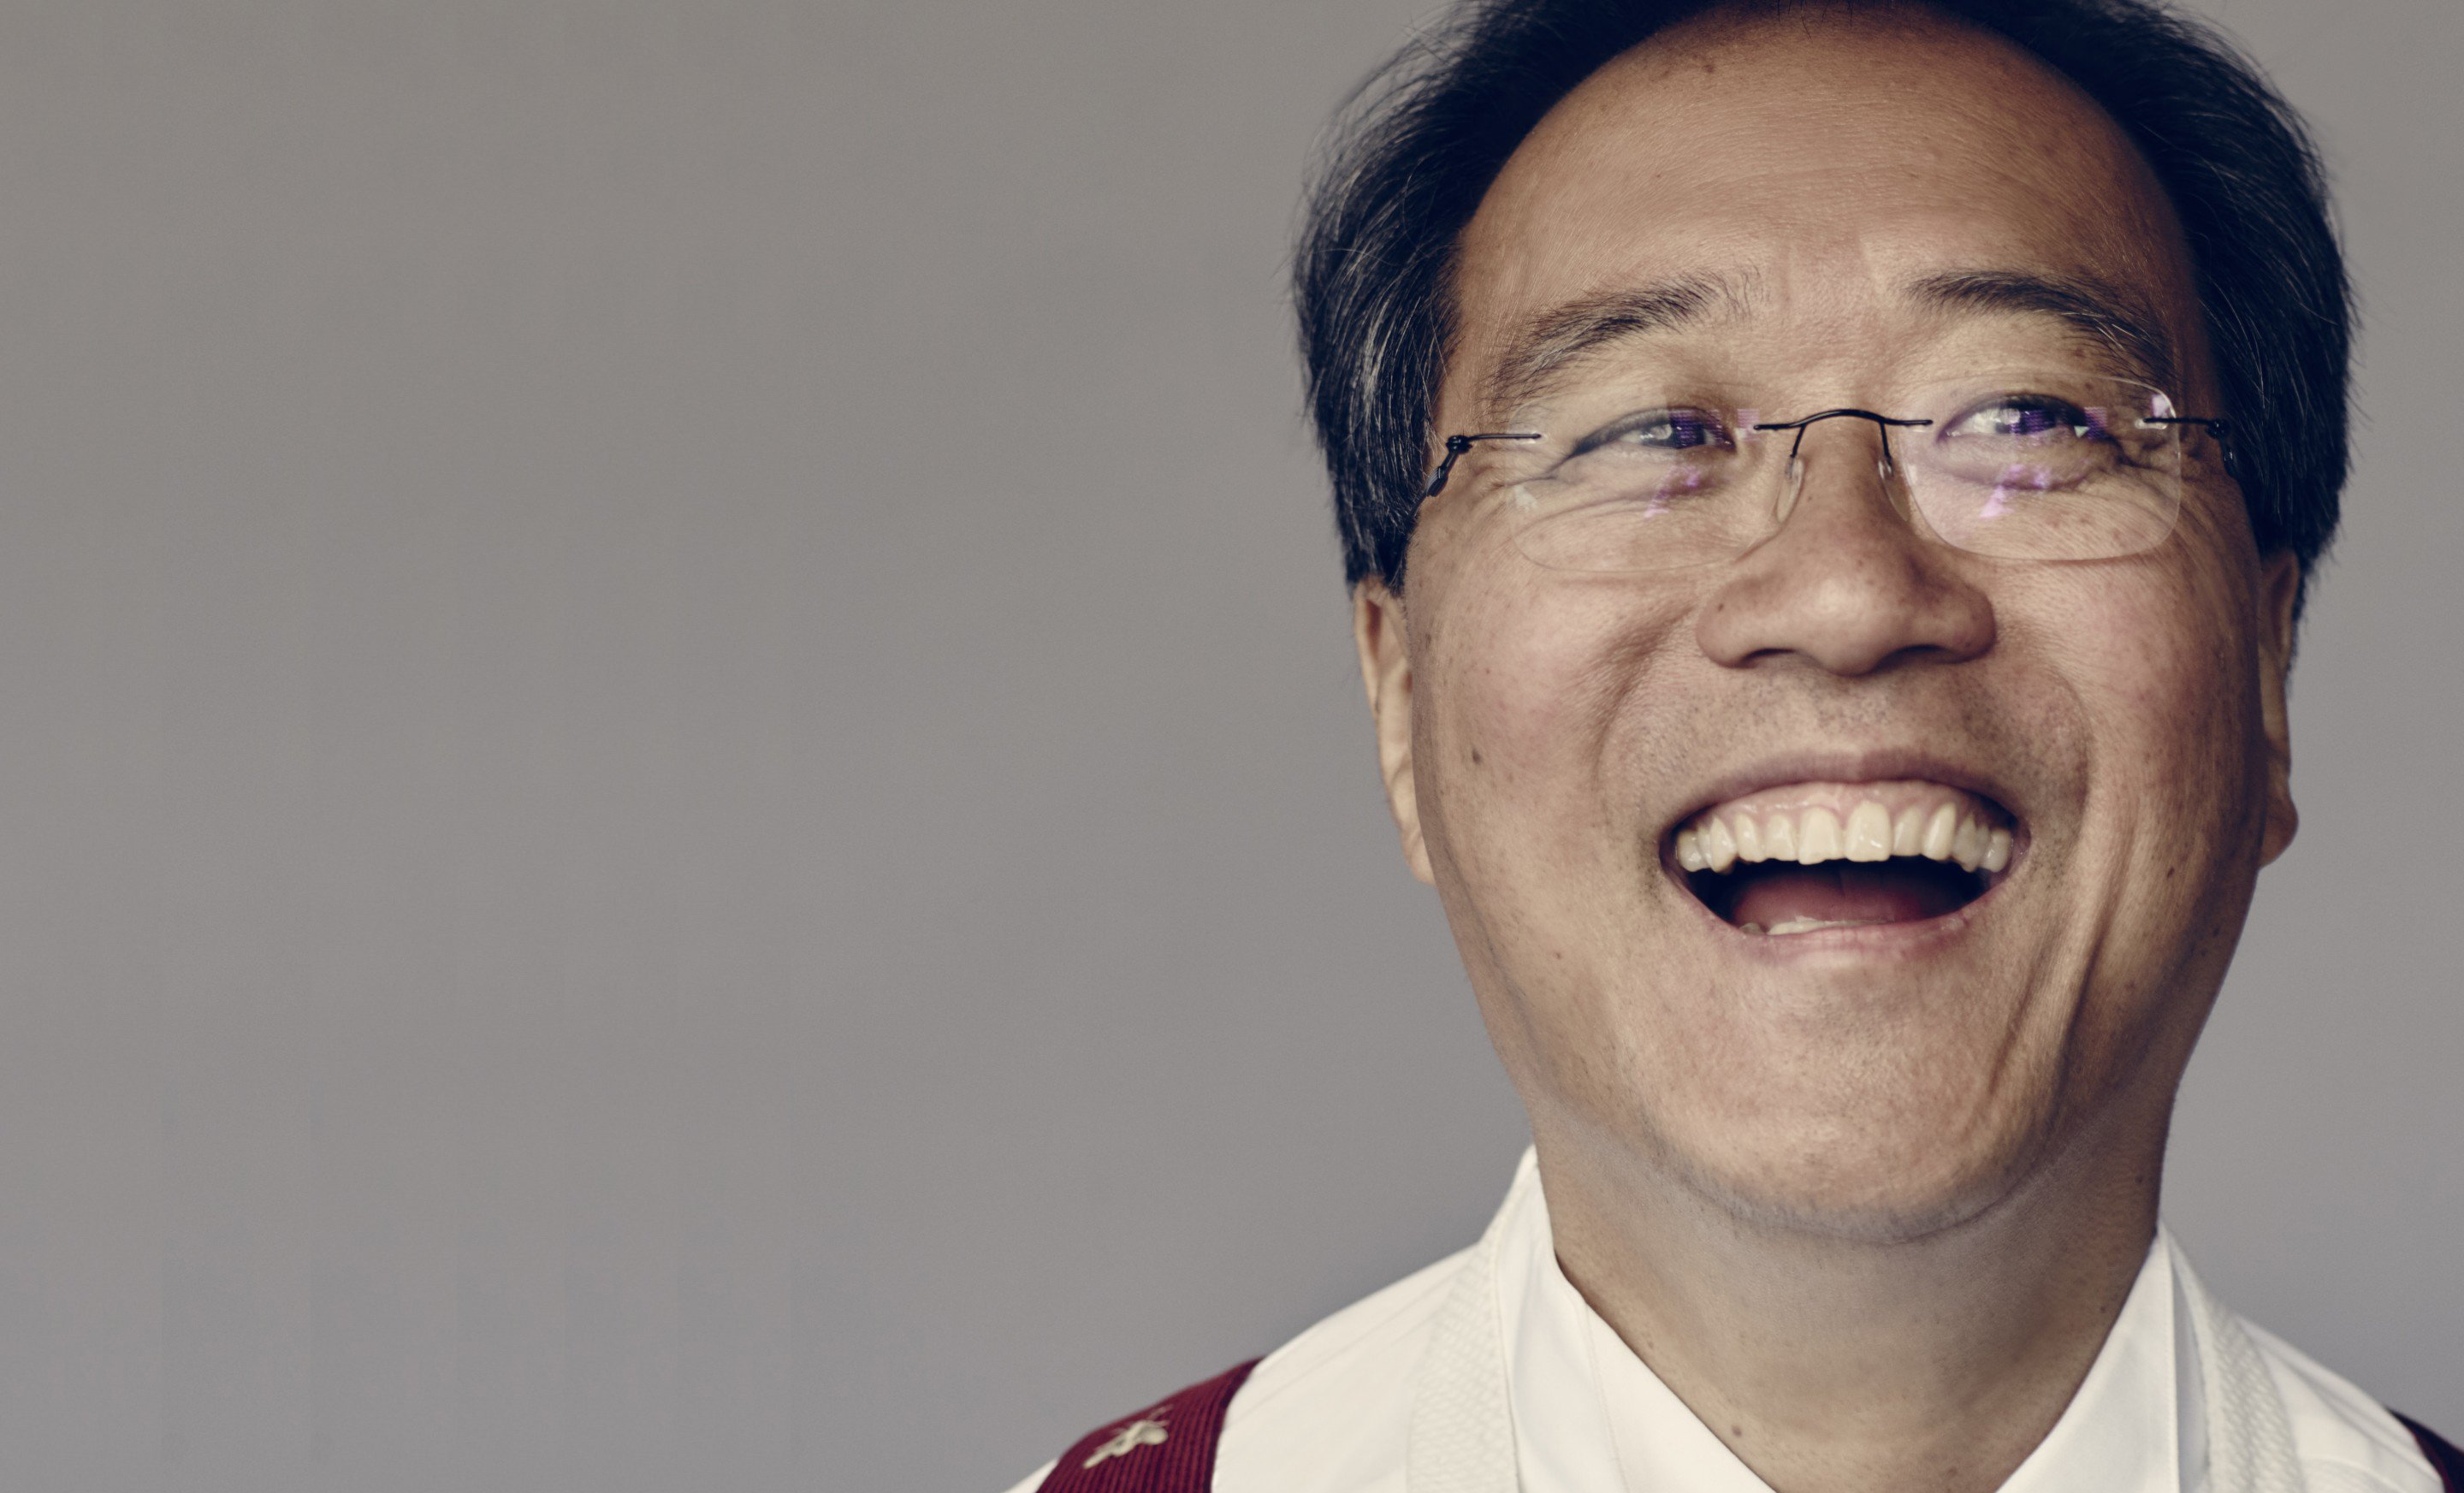 Cello star Yo-Yo Ma to perform at WWI Armistice ceremonies